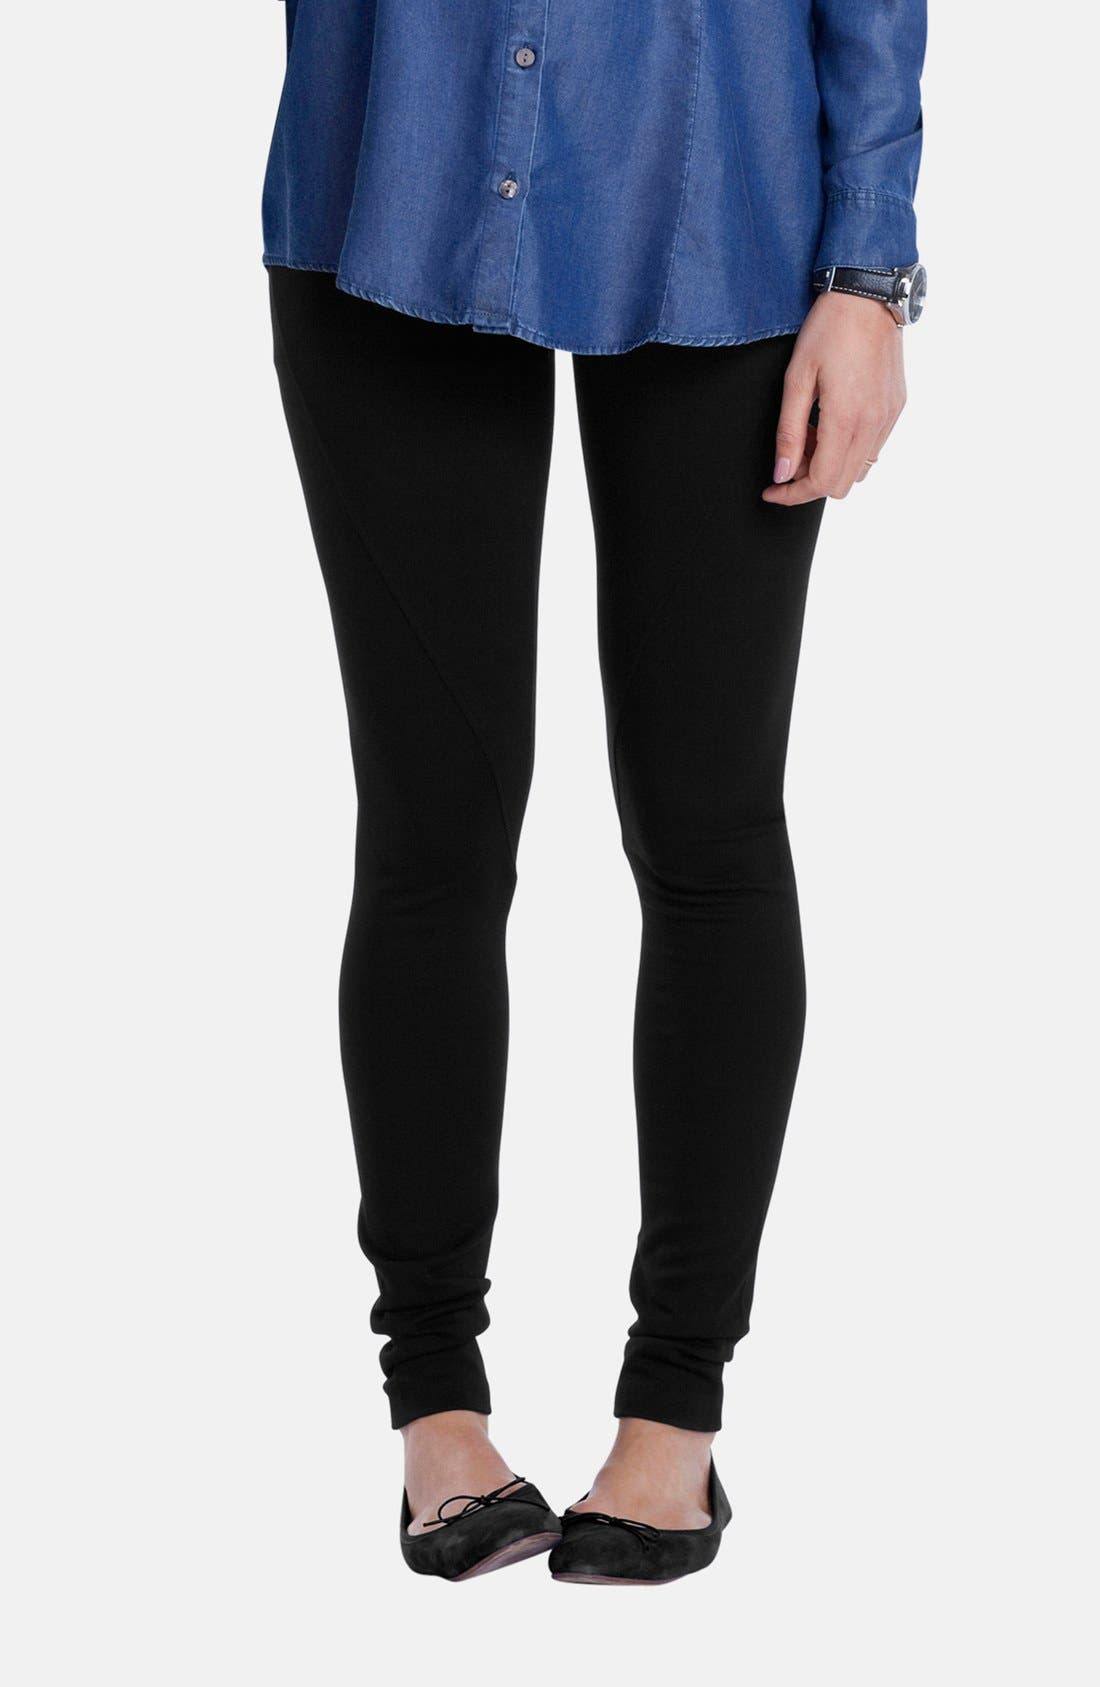 Main Image - Isabella Oliver 'Essential' Maternity Leggings